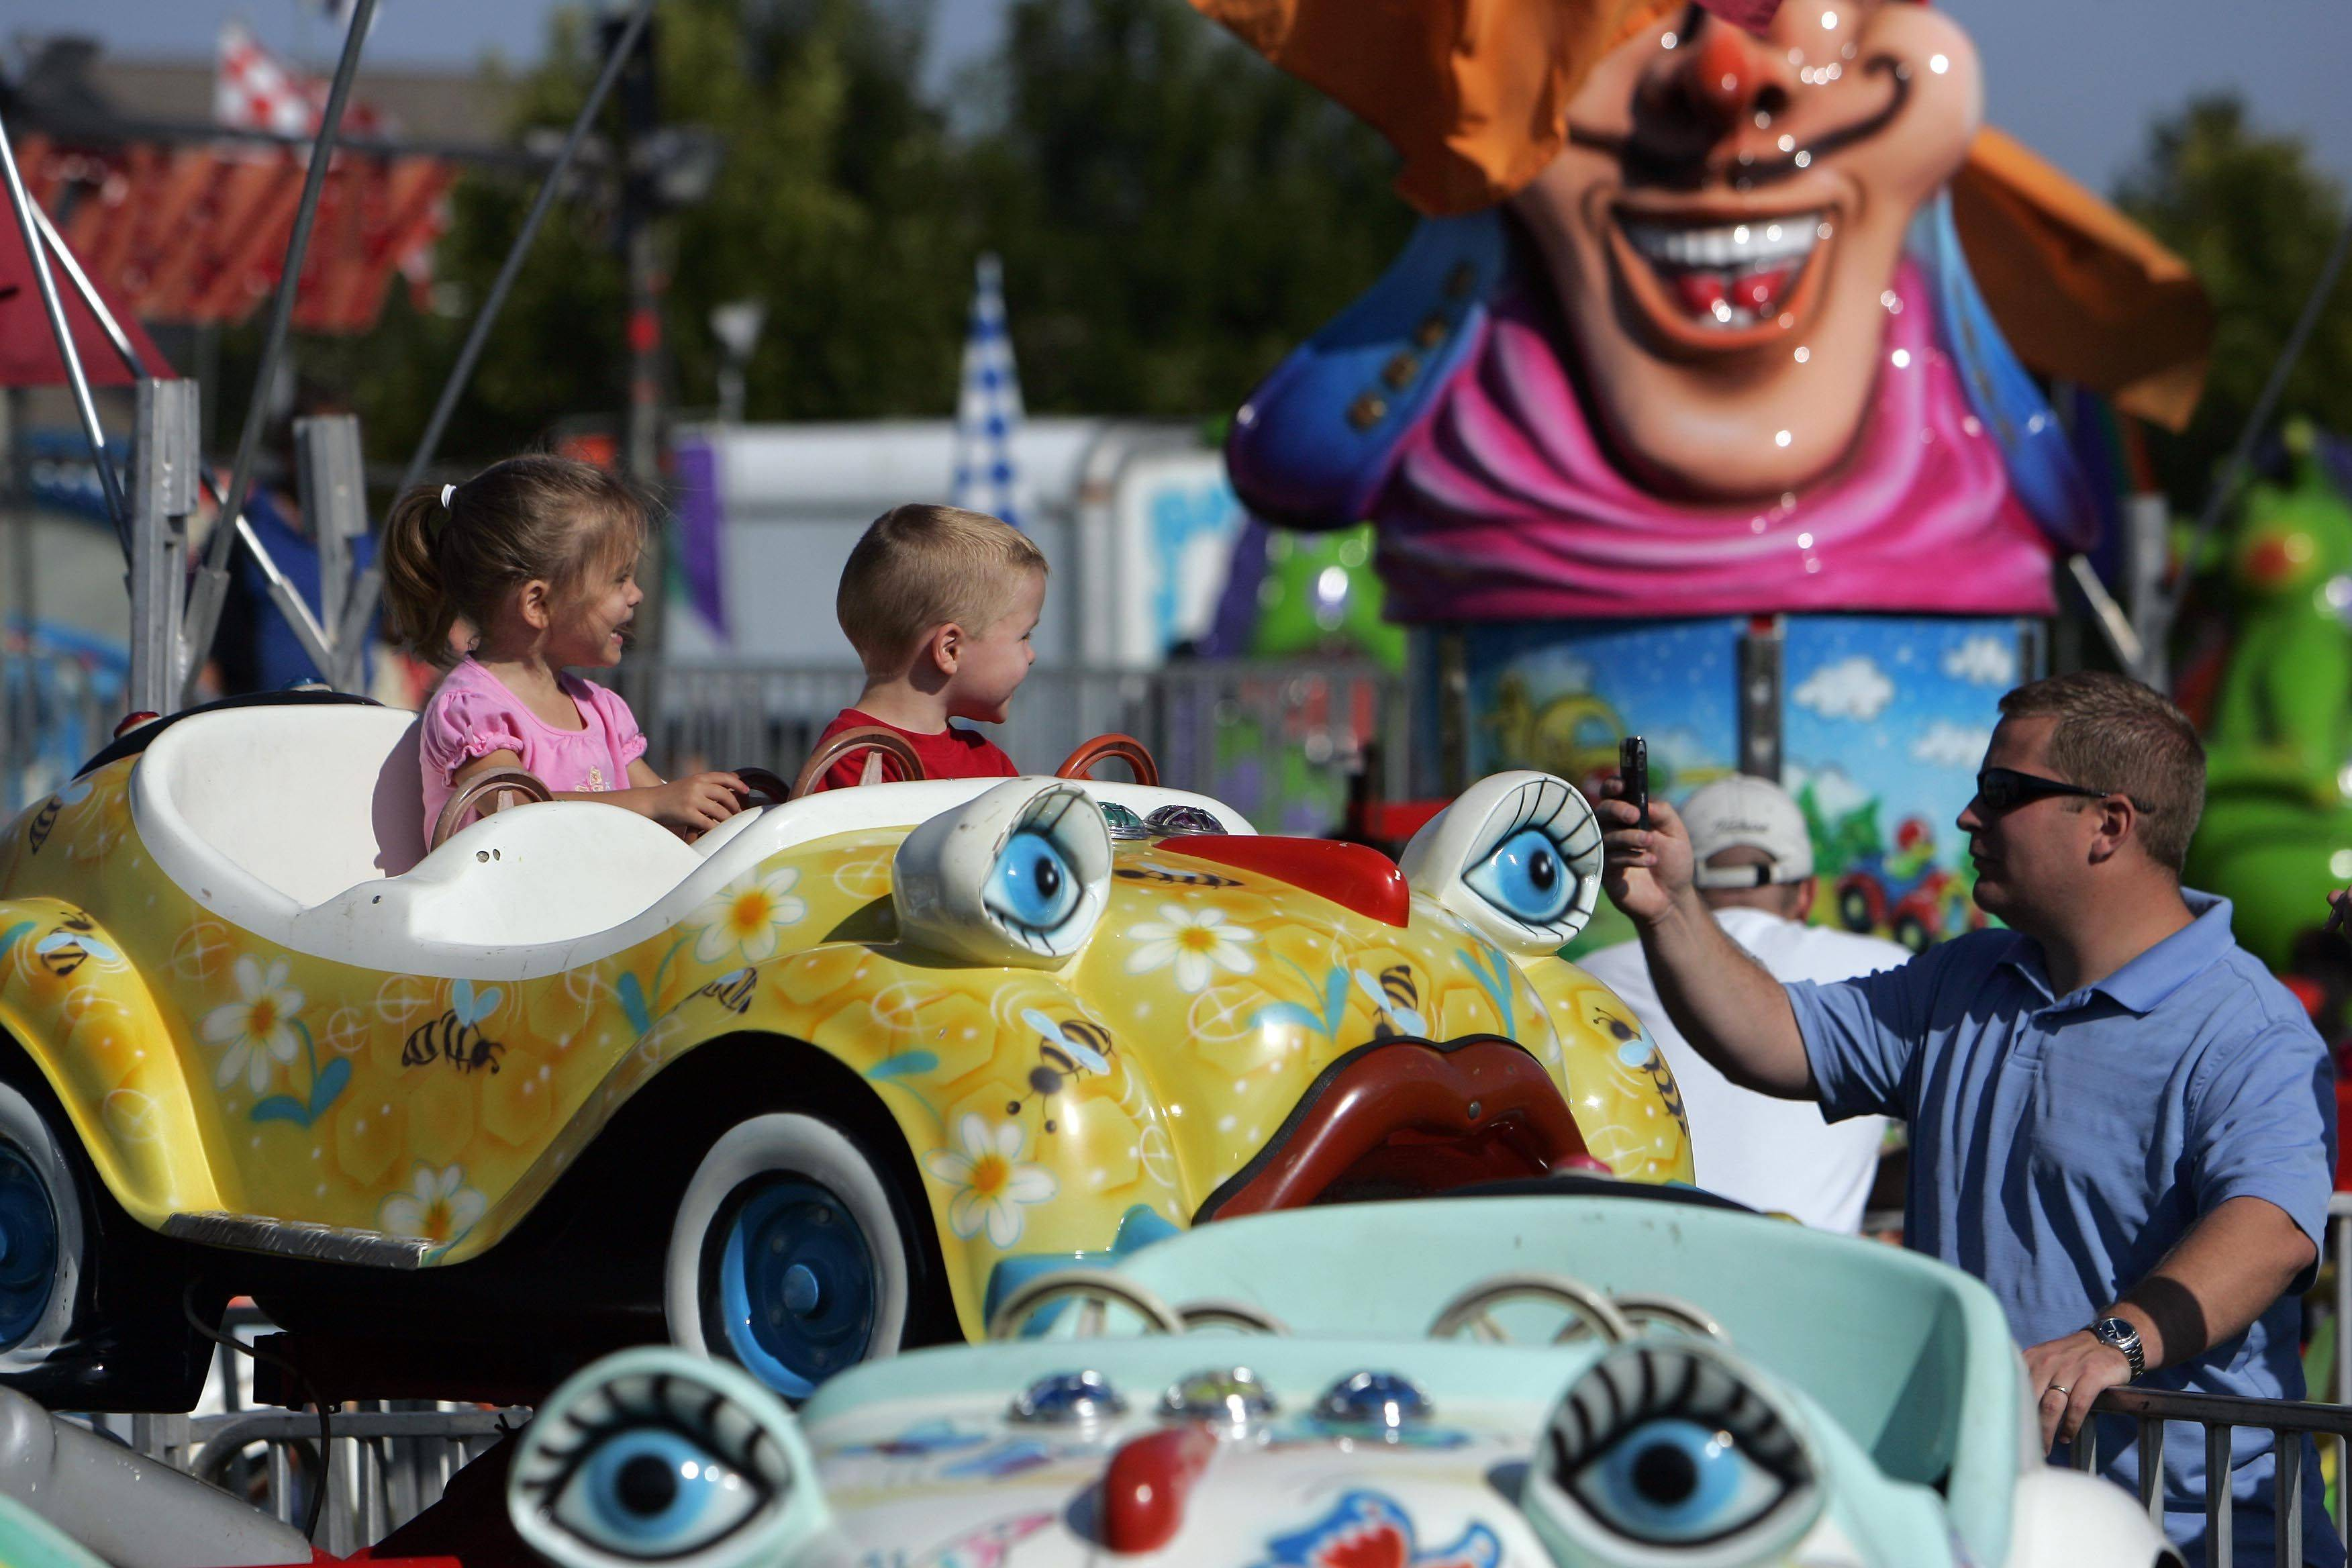 Jason Henning of Lake in the Hills takes a picture of his twins, Ashley, and Brady, both 3, at a previous Summer Sunset Festival in Lake in the Hills.